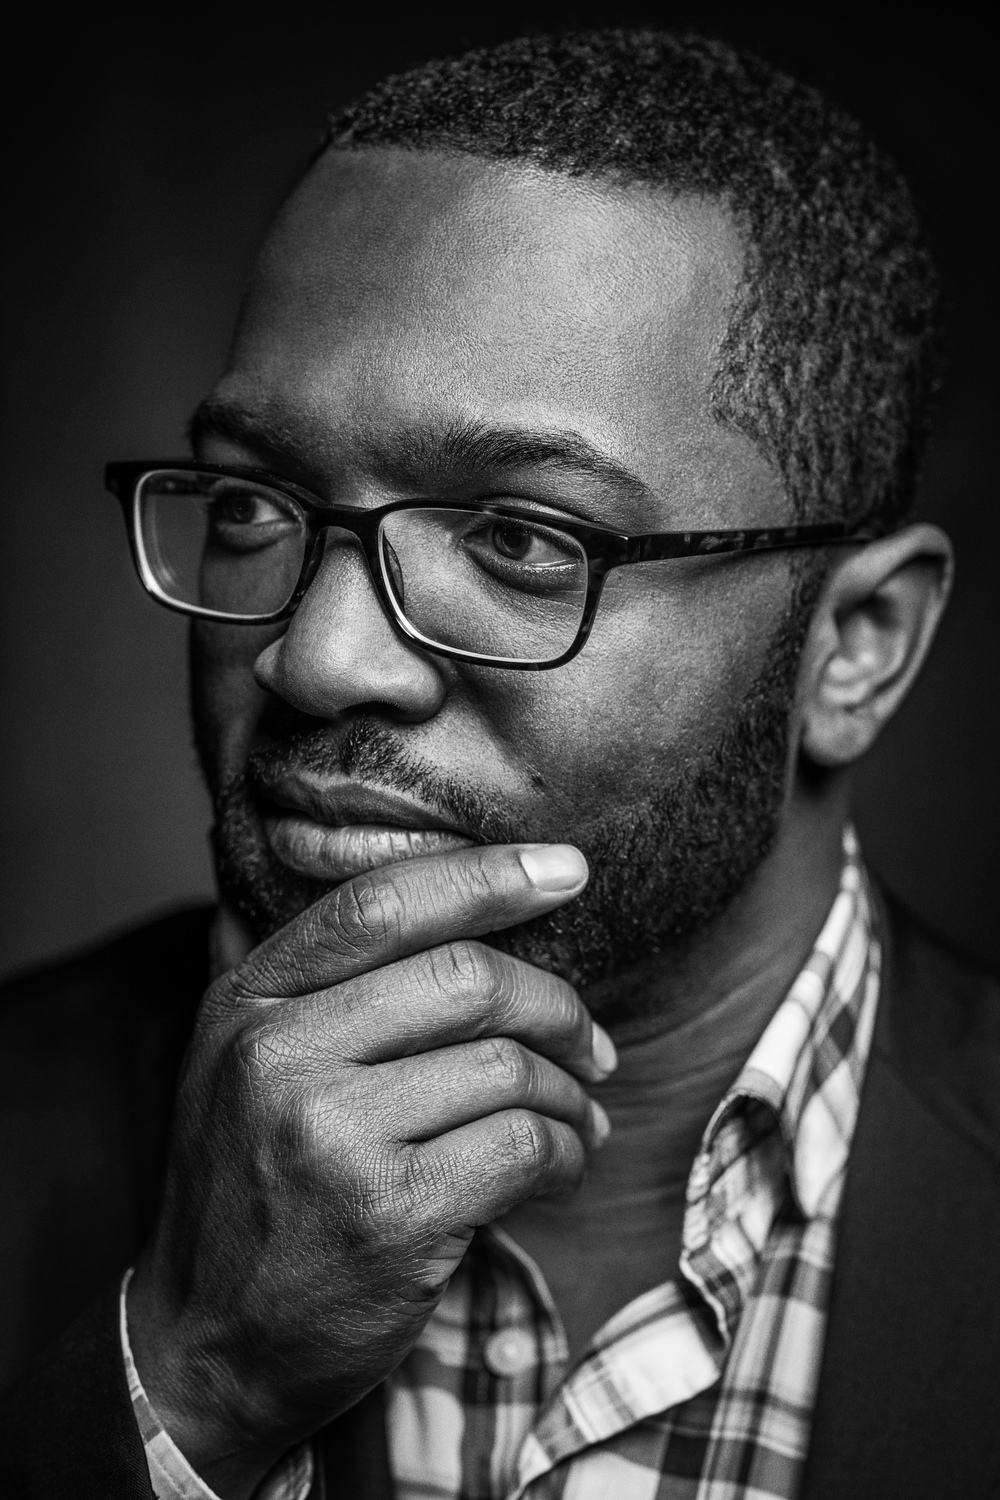 Baratunde Lookin All Thoughtful (B&W) high resolution